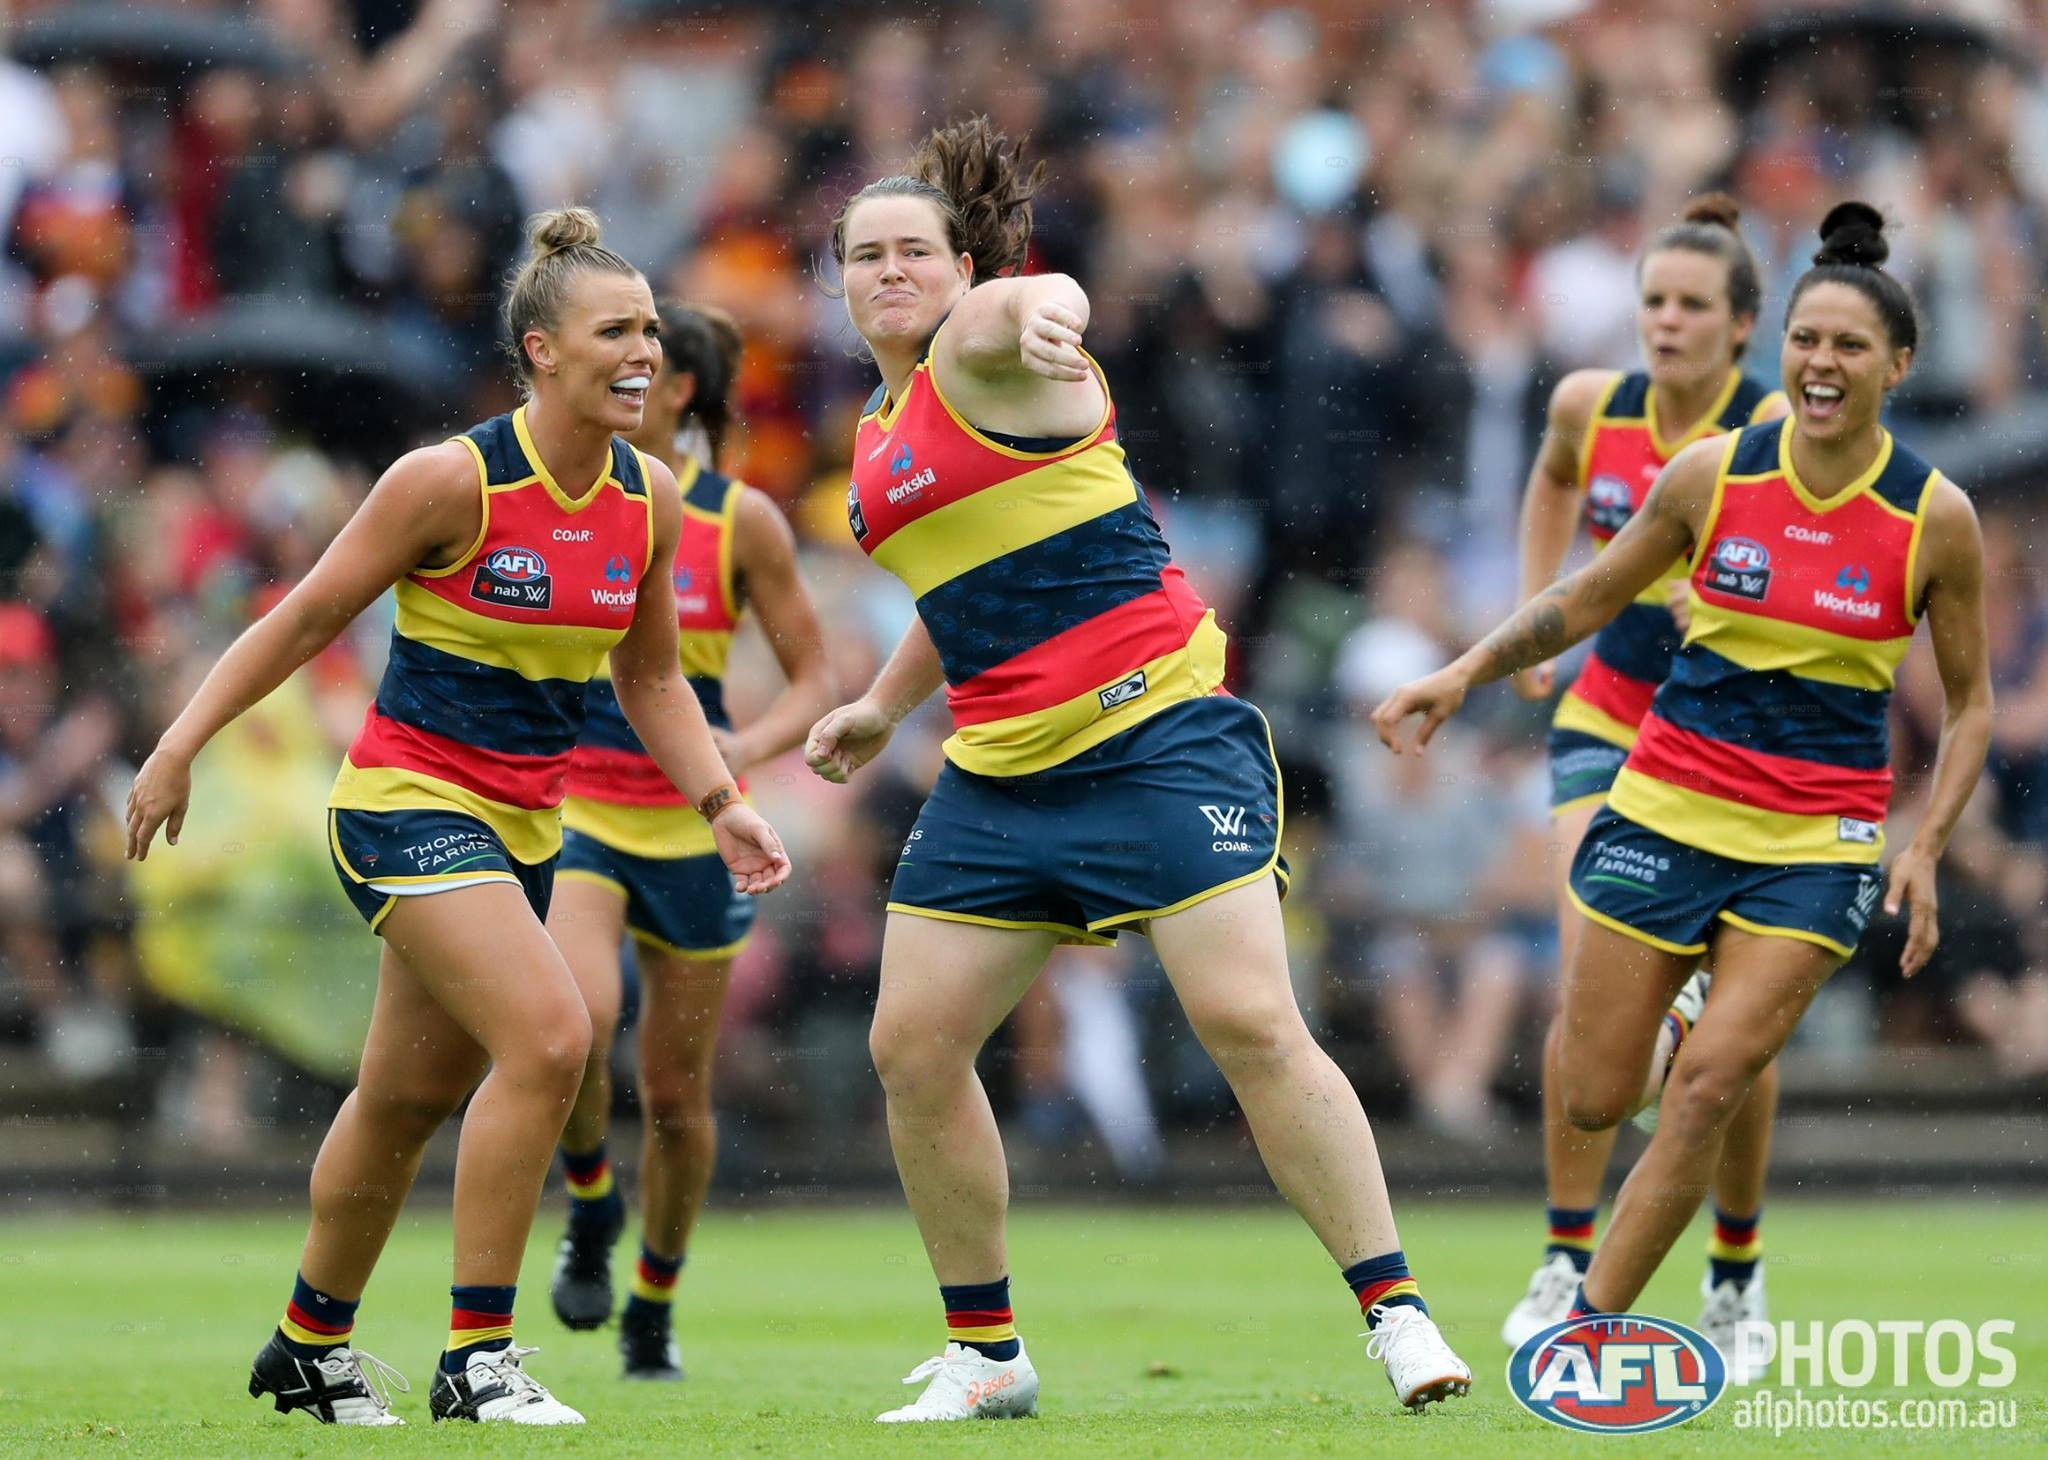 adelaide crows afl womens league adelaide